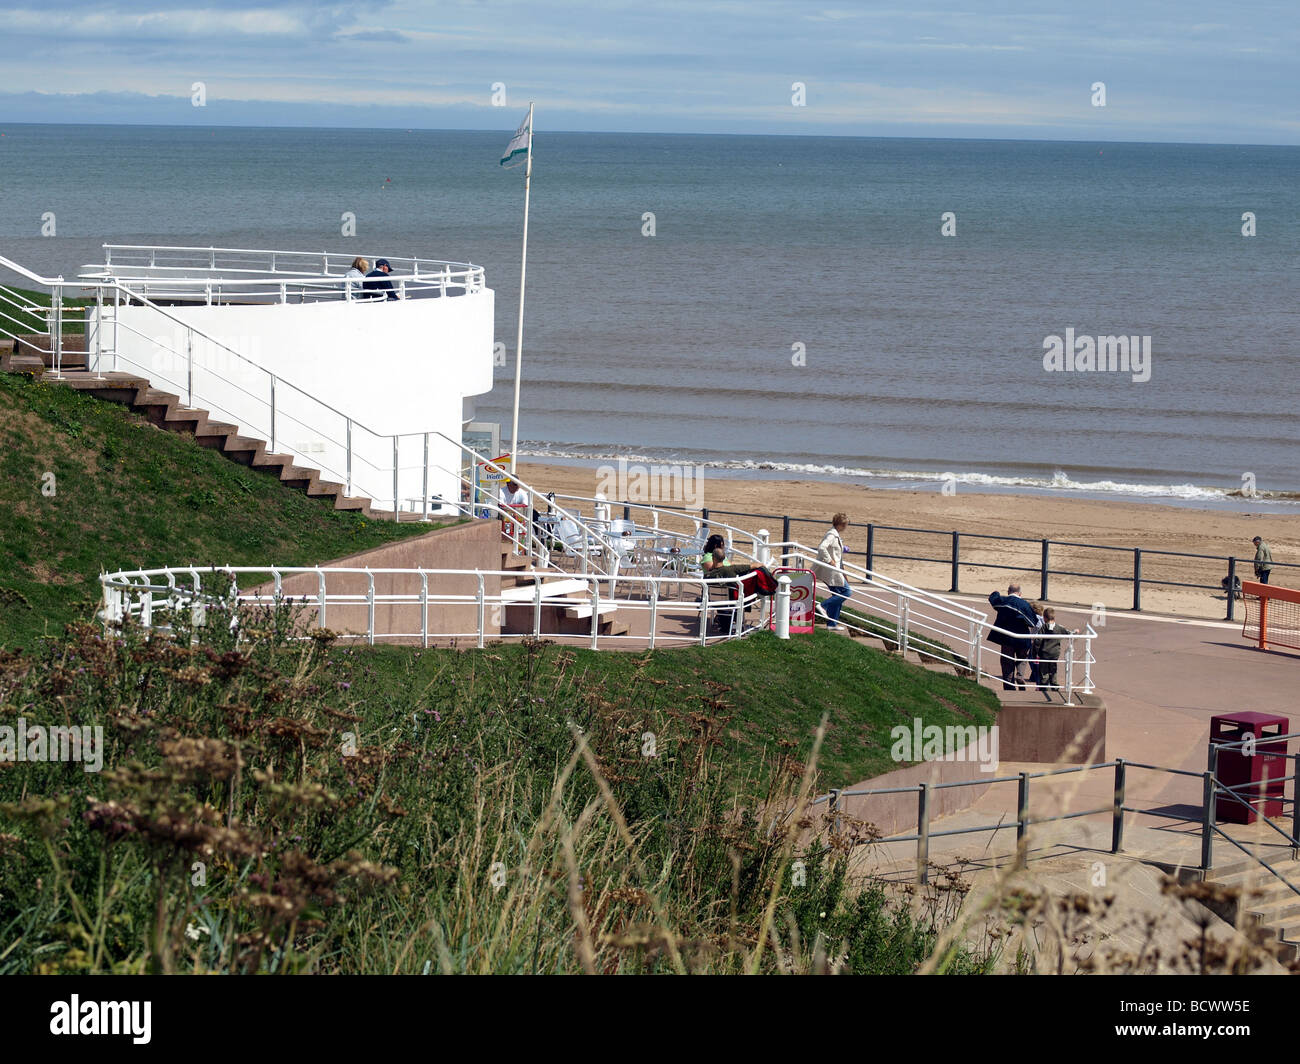 Cafe overlooking the south bay and beach at Bridlington,North Yorkshire. - Stock Image